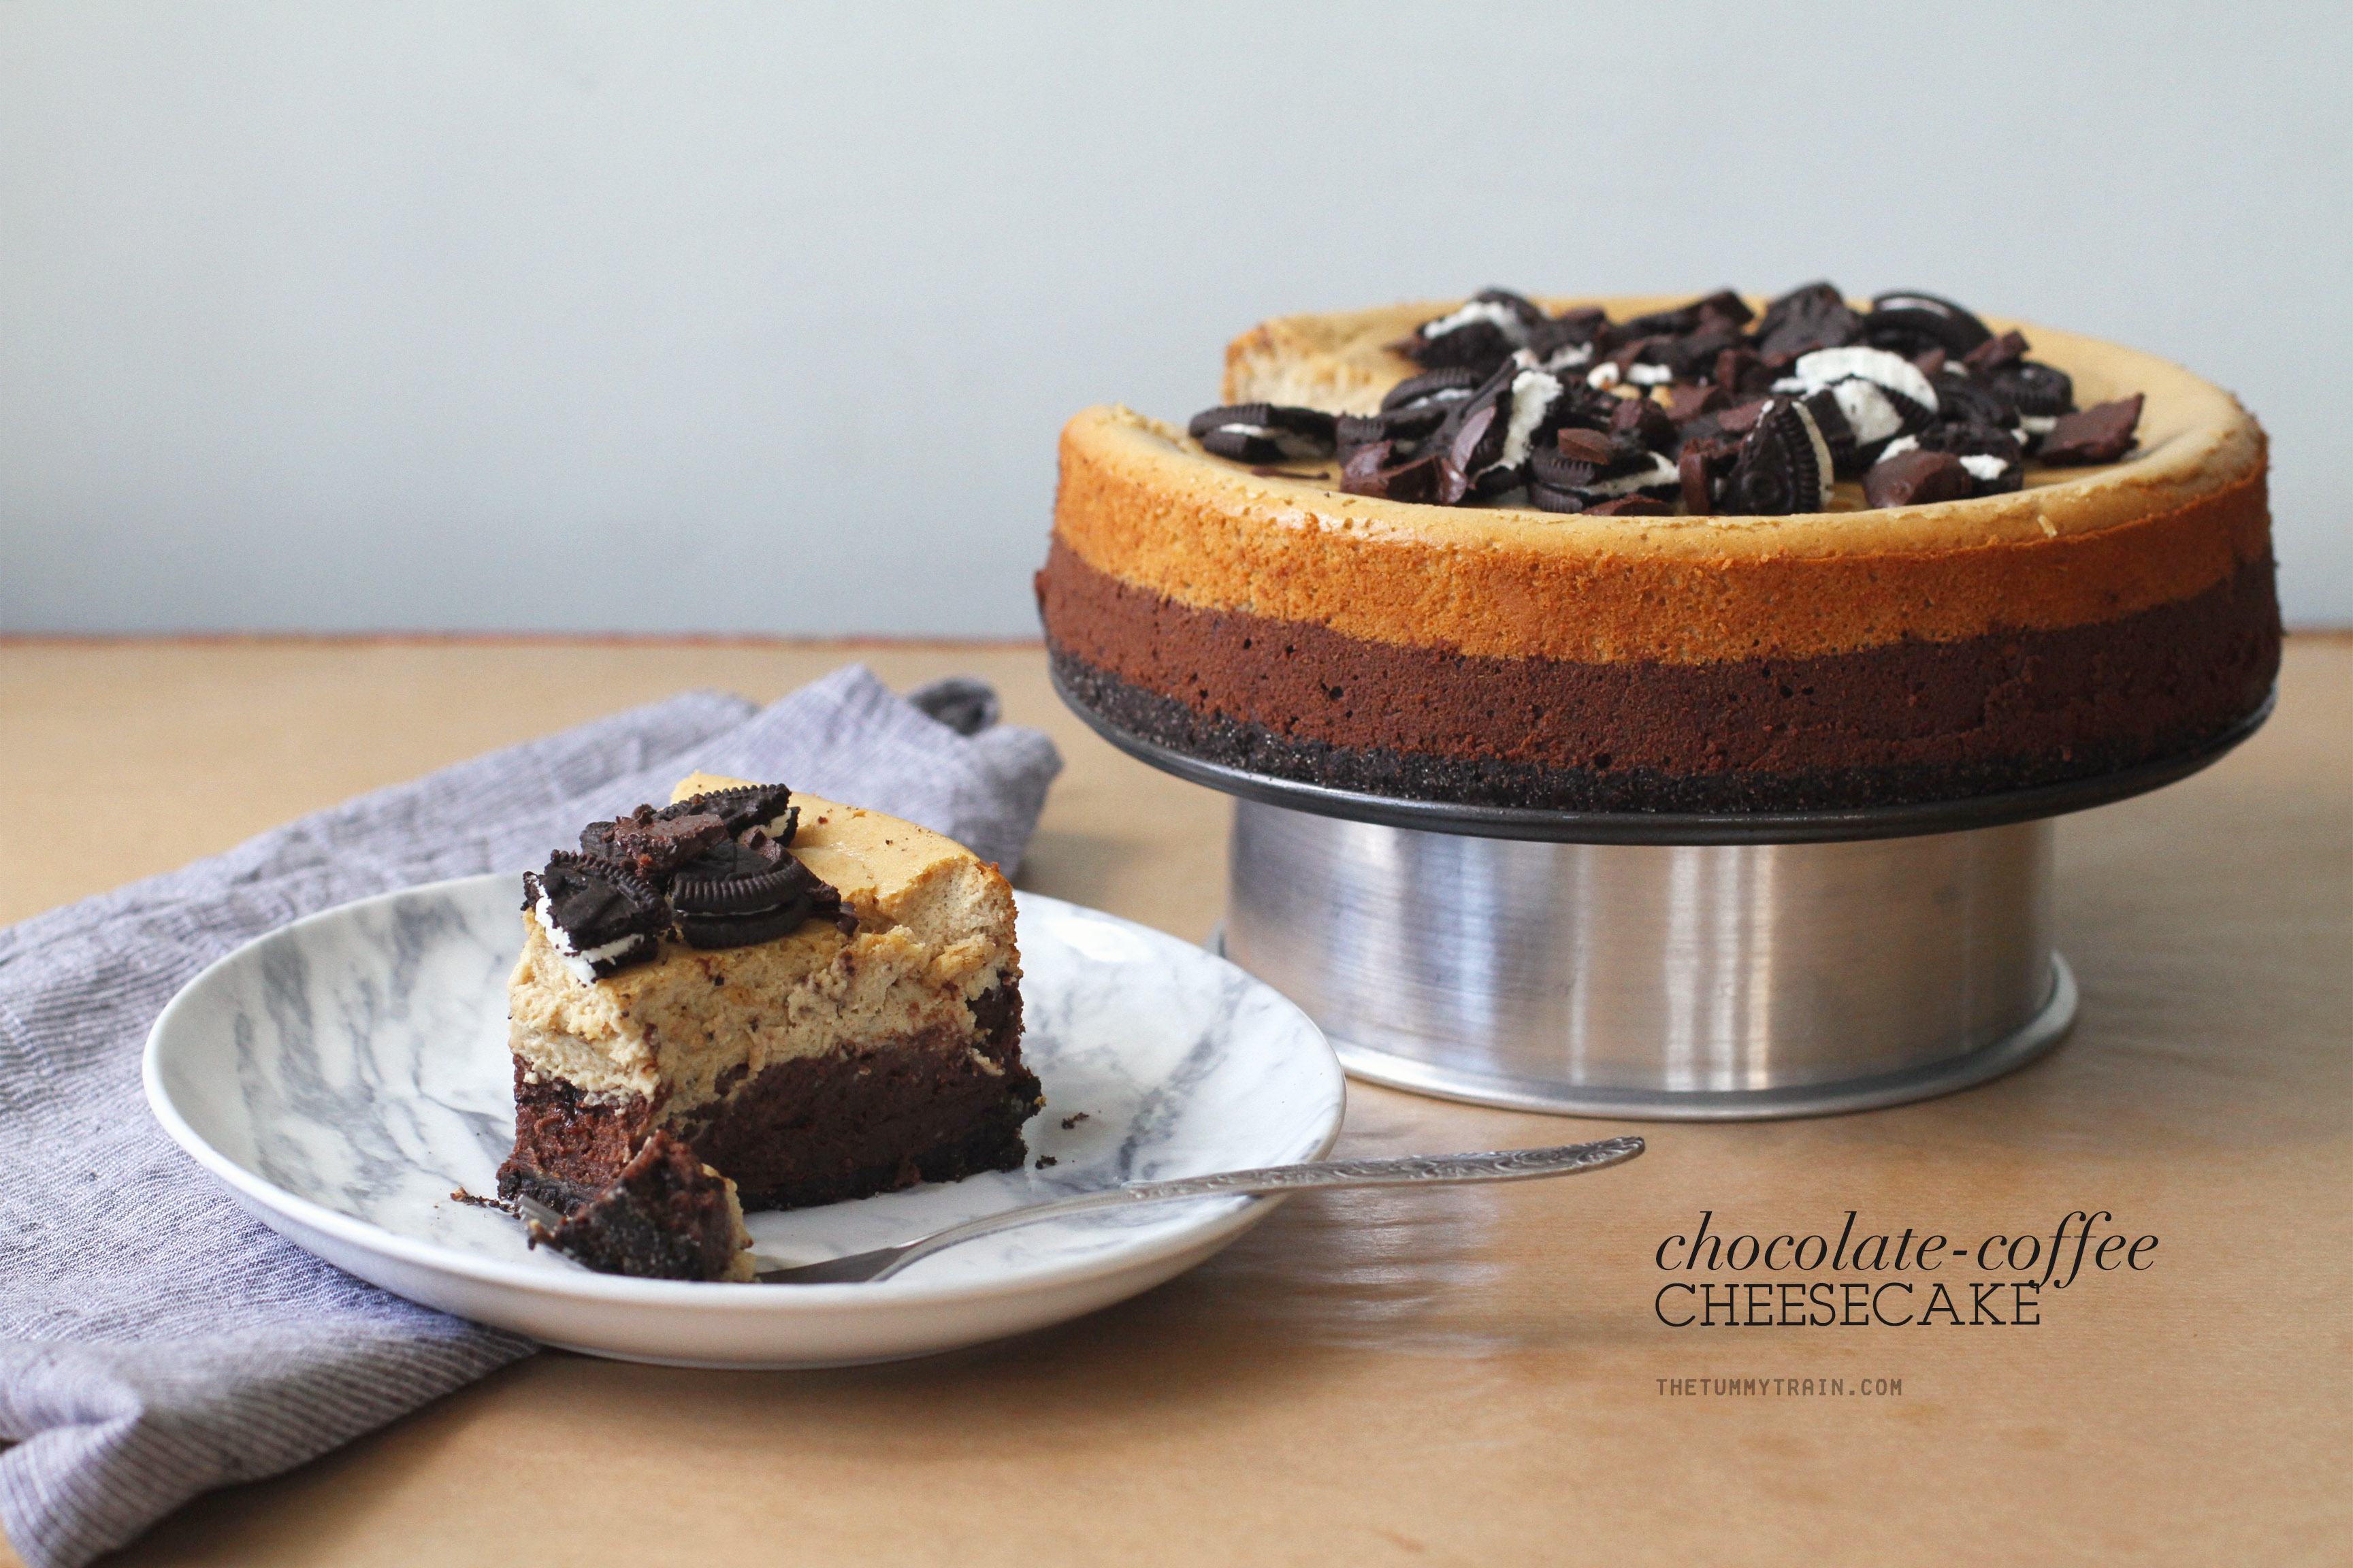 Coffee Choco Cheesecake 1 - This Chocolate & Coffee Cheesecake is insanely good